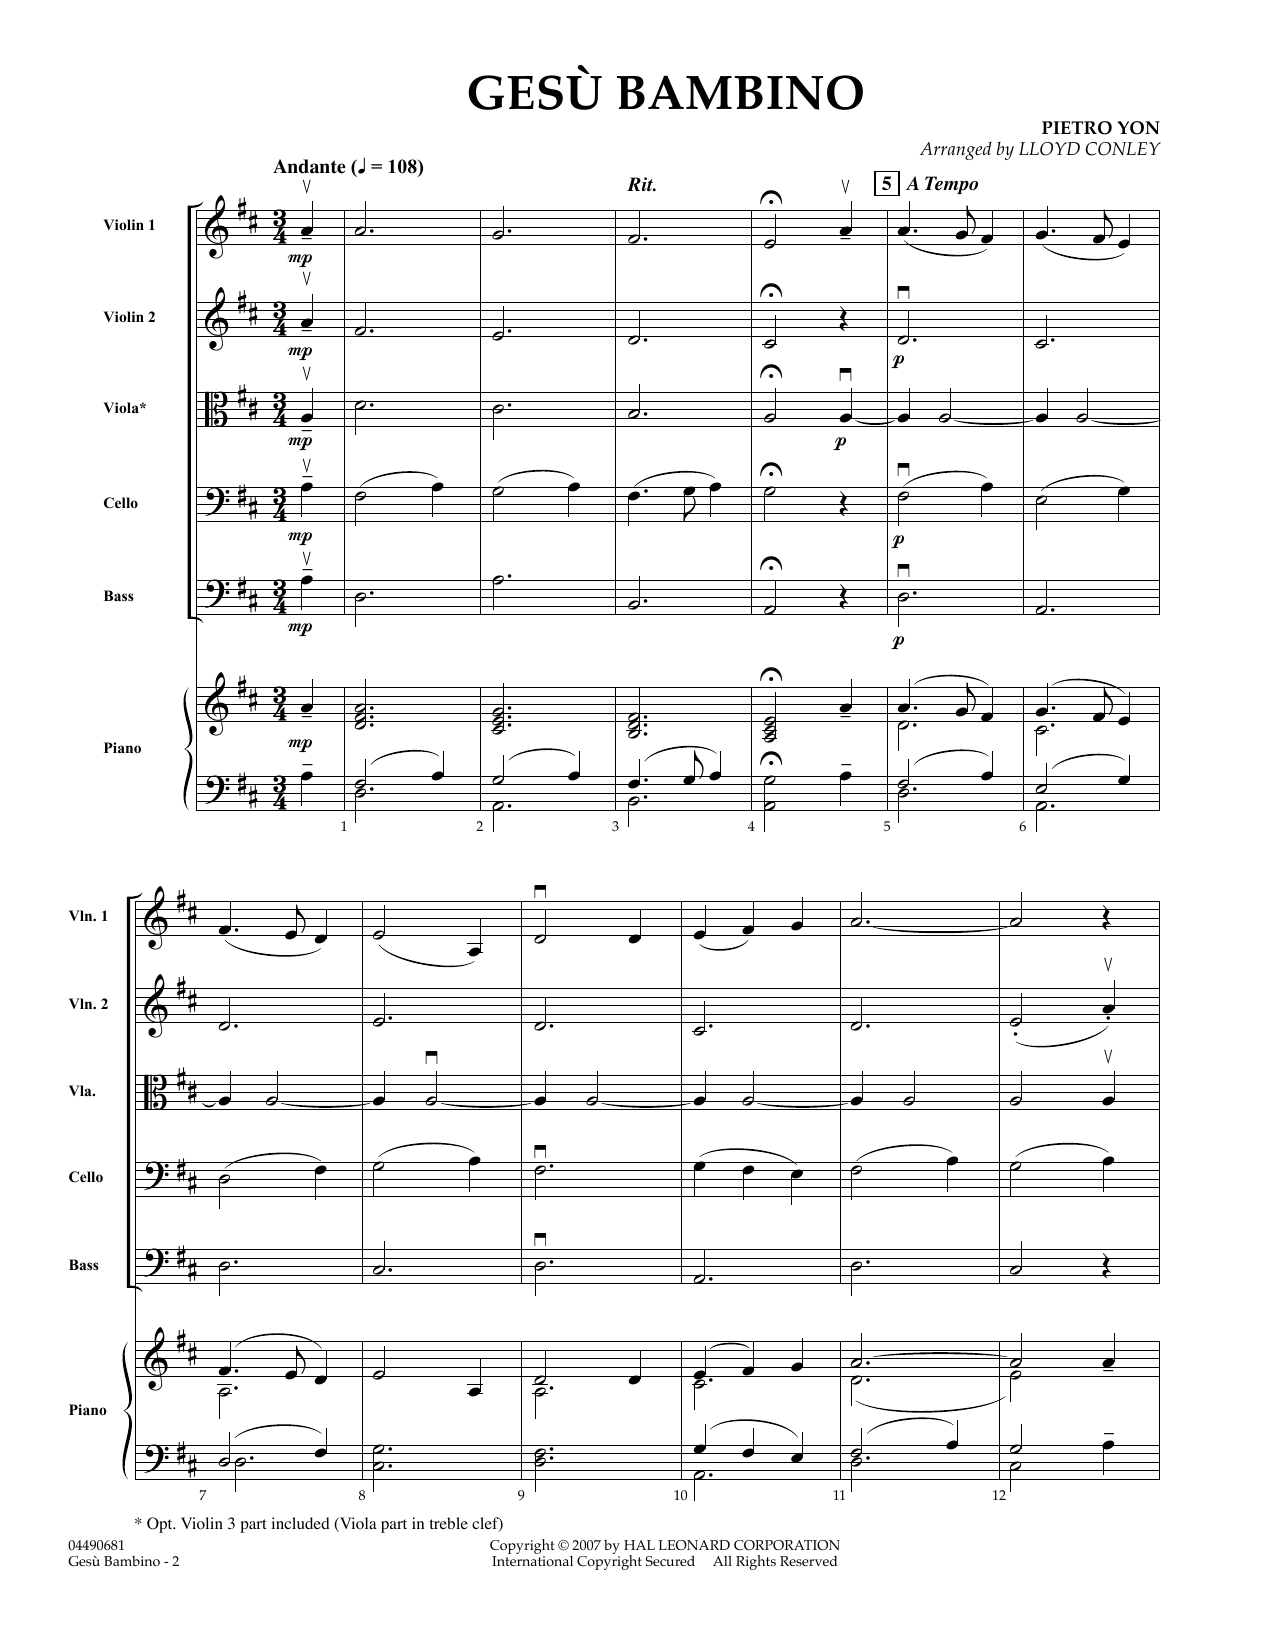 Gesu Bambino (COMPLETE) sheet music for orchestra by Lloyd Conley, Frederick H. Martens and Pietro Yon. Score Image Preview.